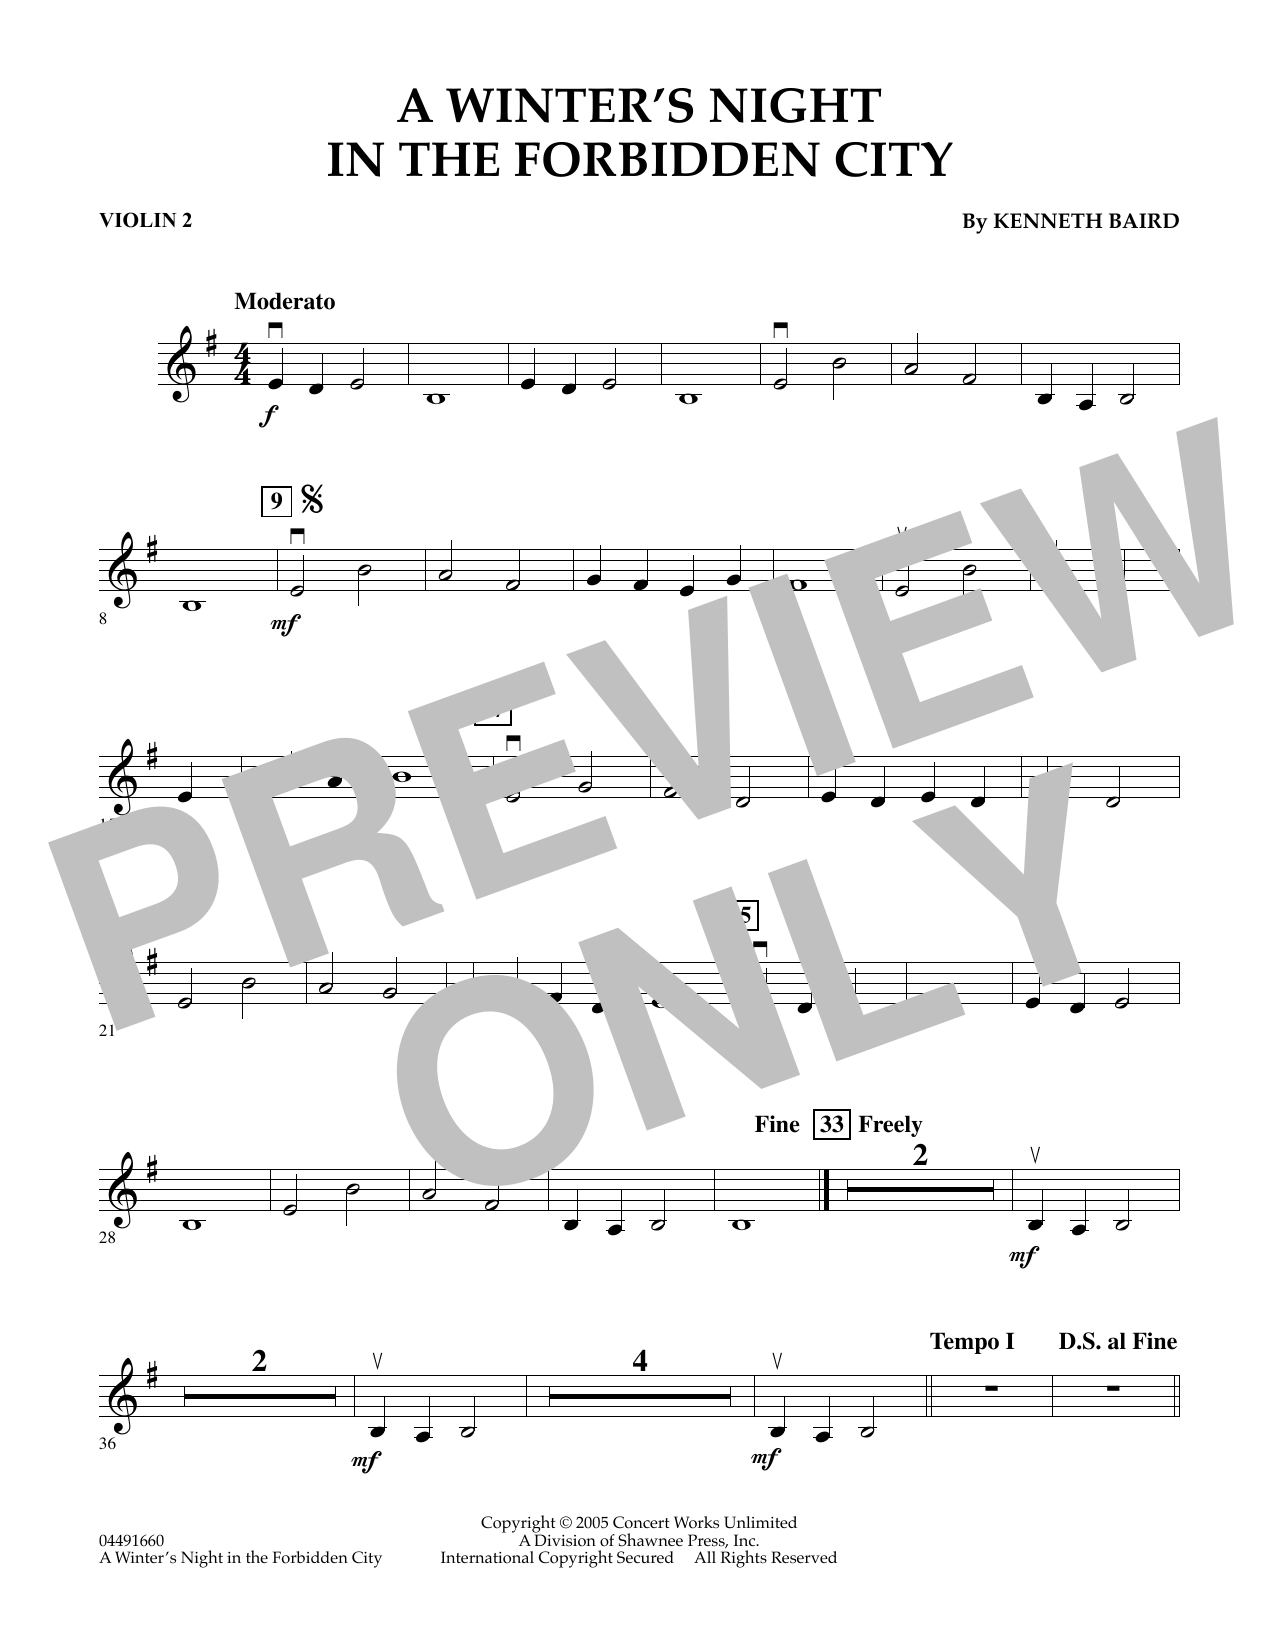 Kenneth Baird A Winter's Night in the Forbidden City - Violin 2 sheet music notes and chords. Download Printable PDF.